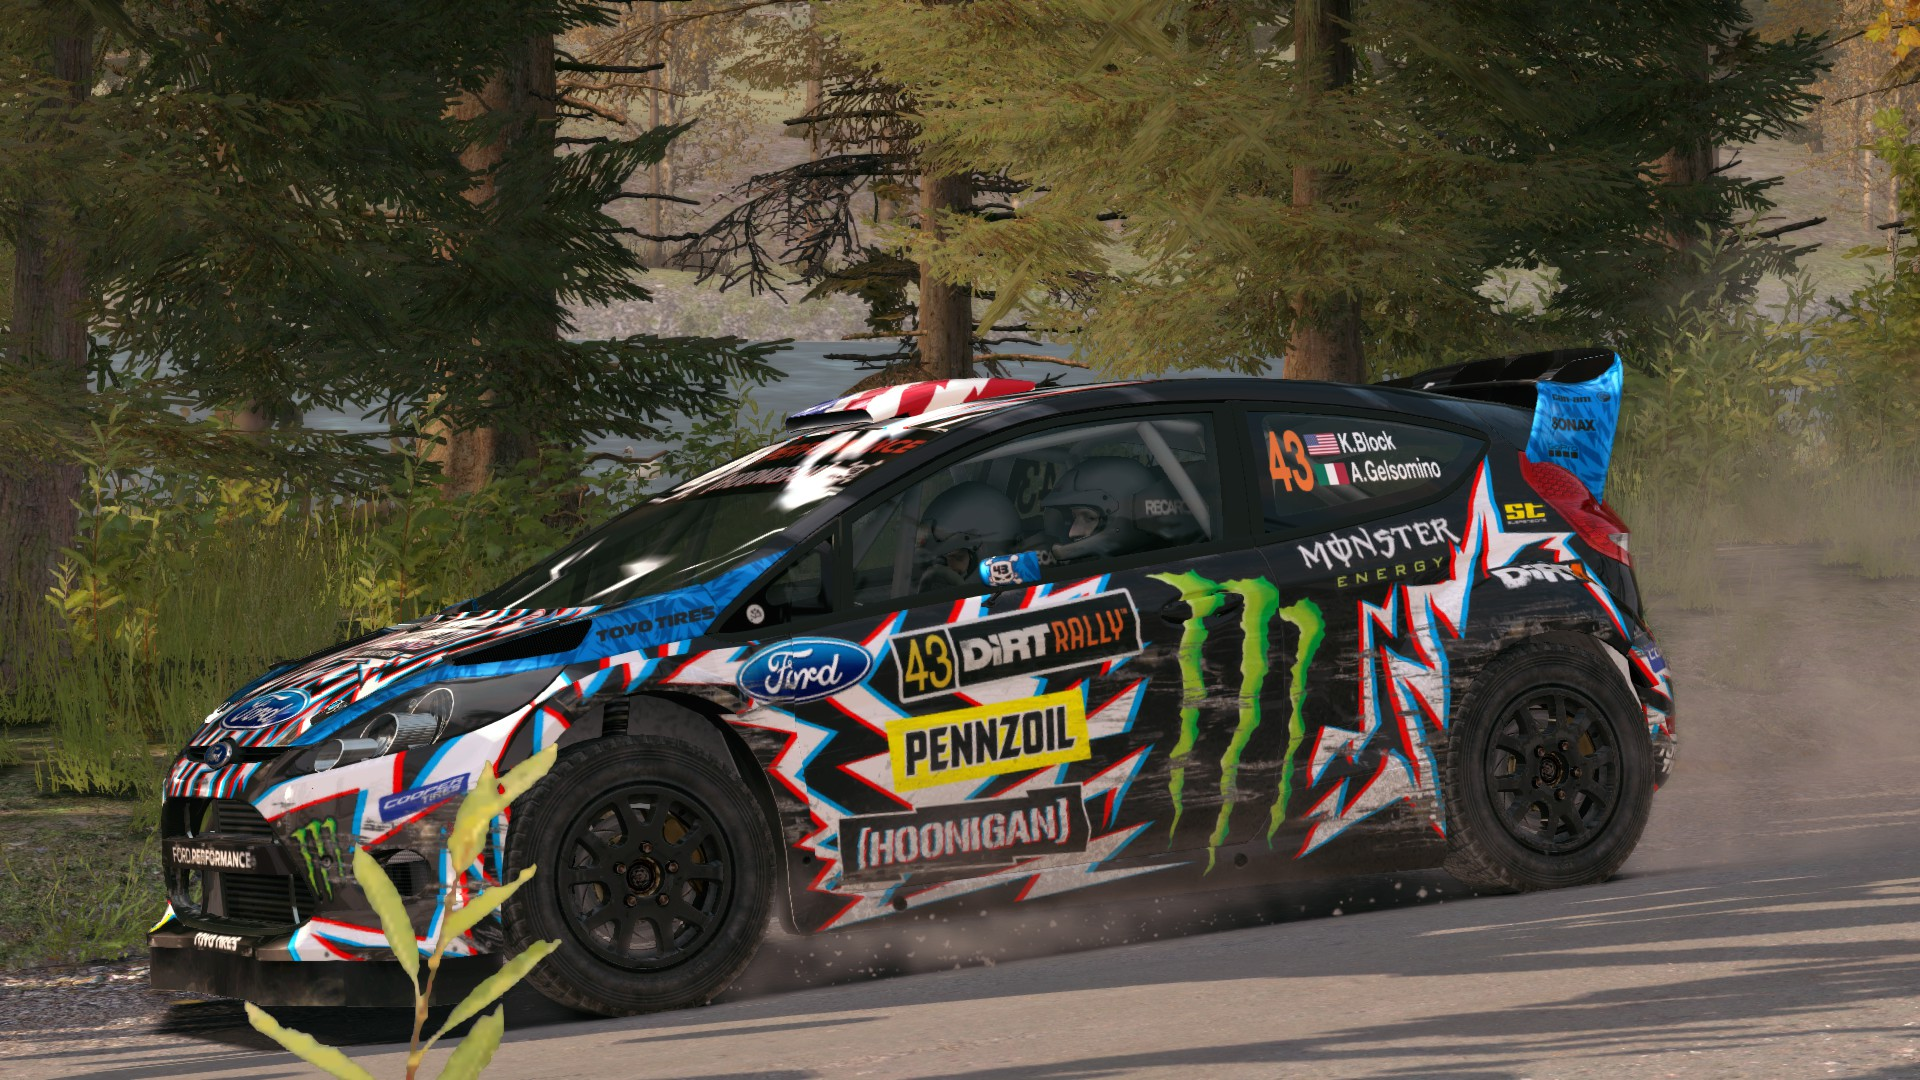 Ford Fiesta Rs Rally 2017 Hoonigan Racing Death Spray